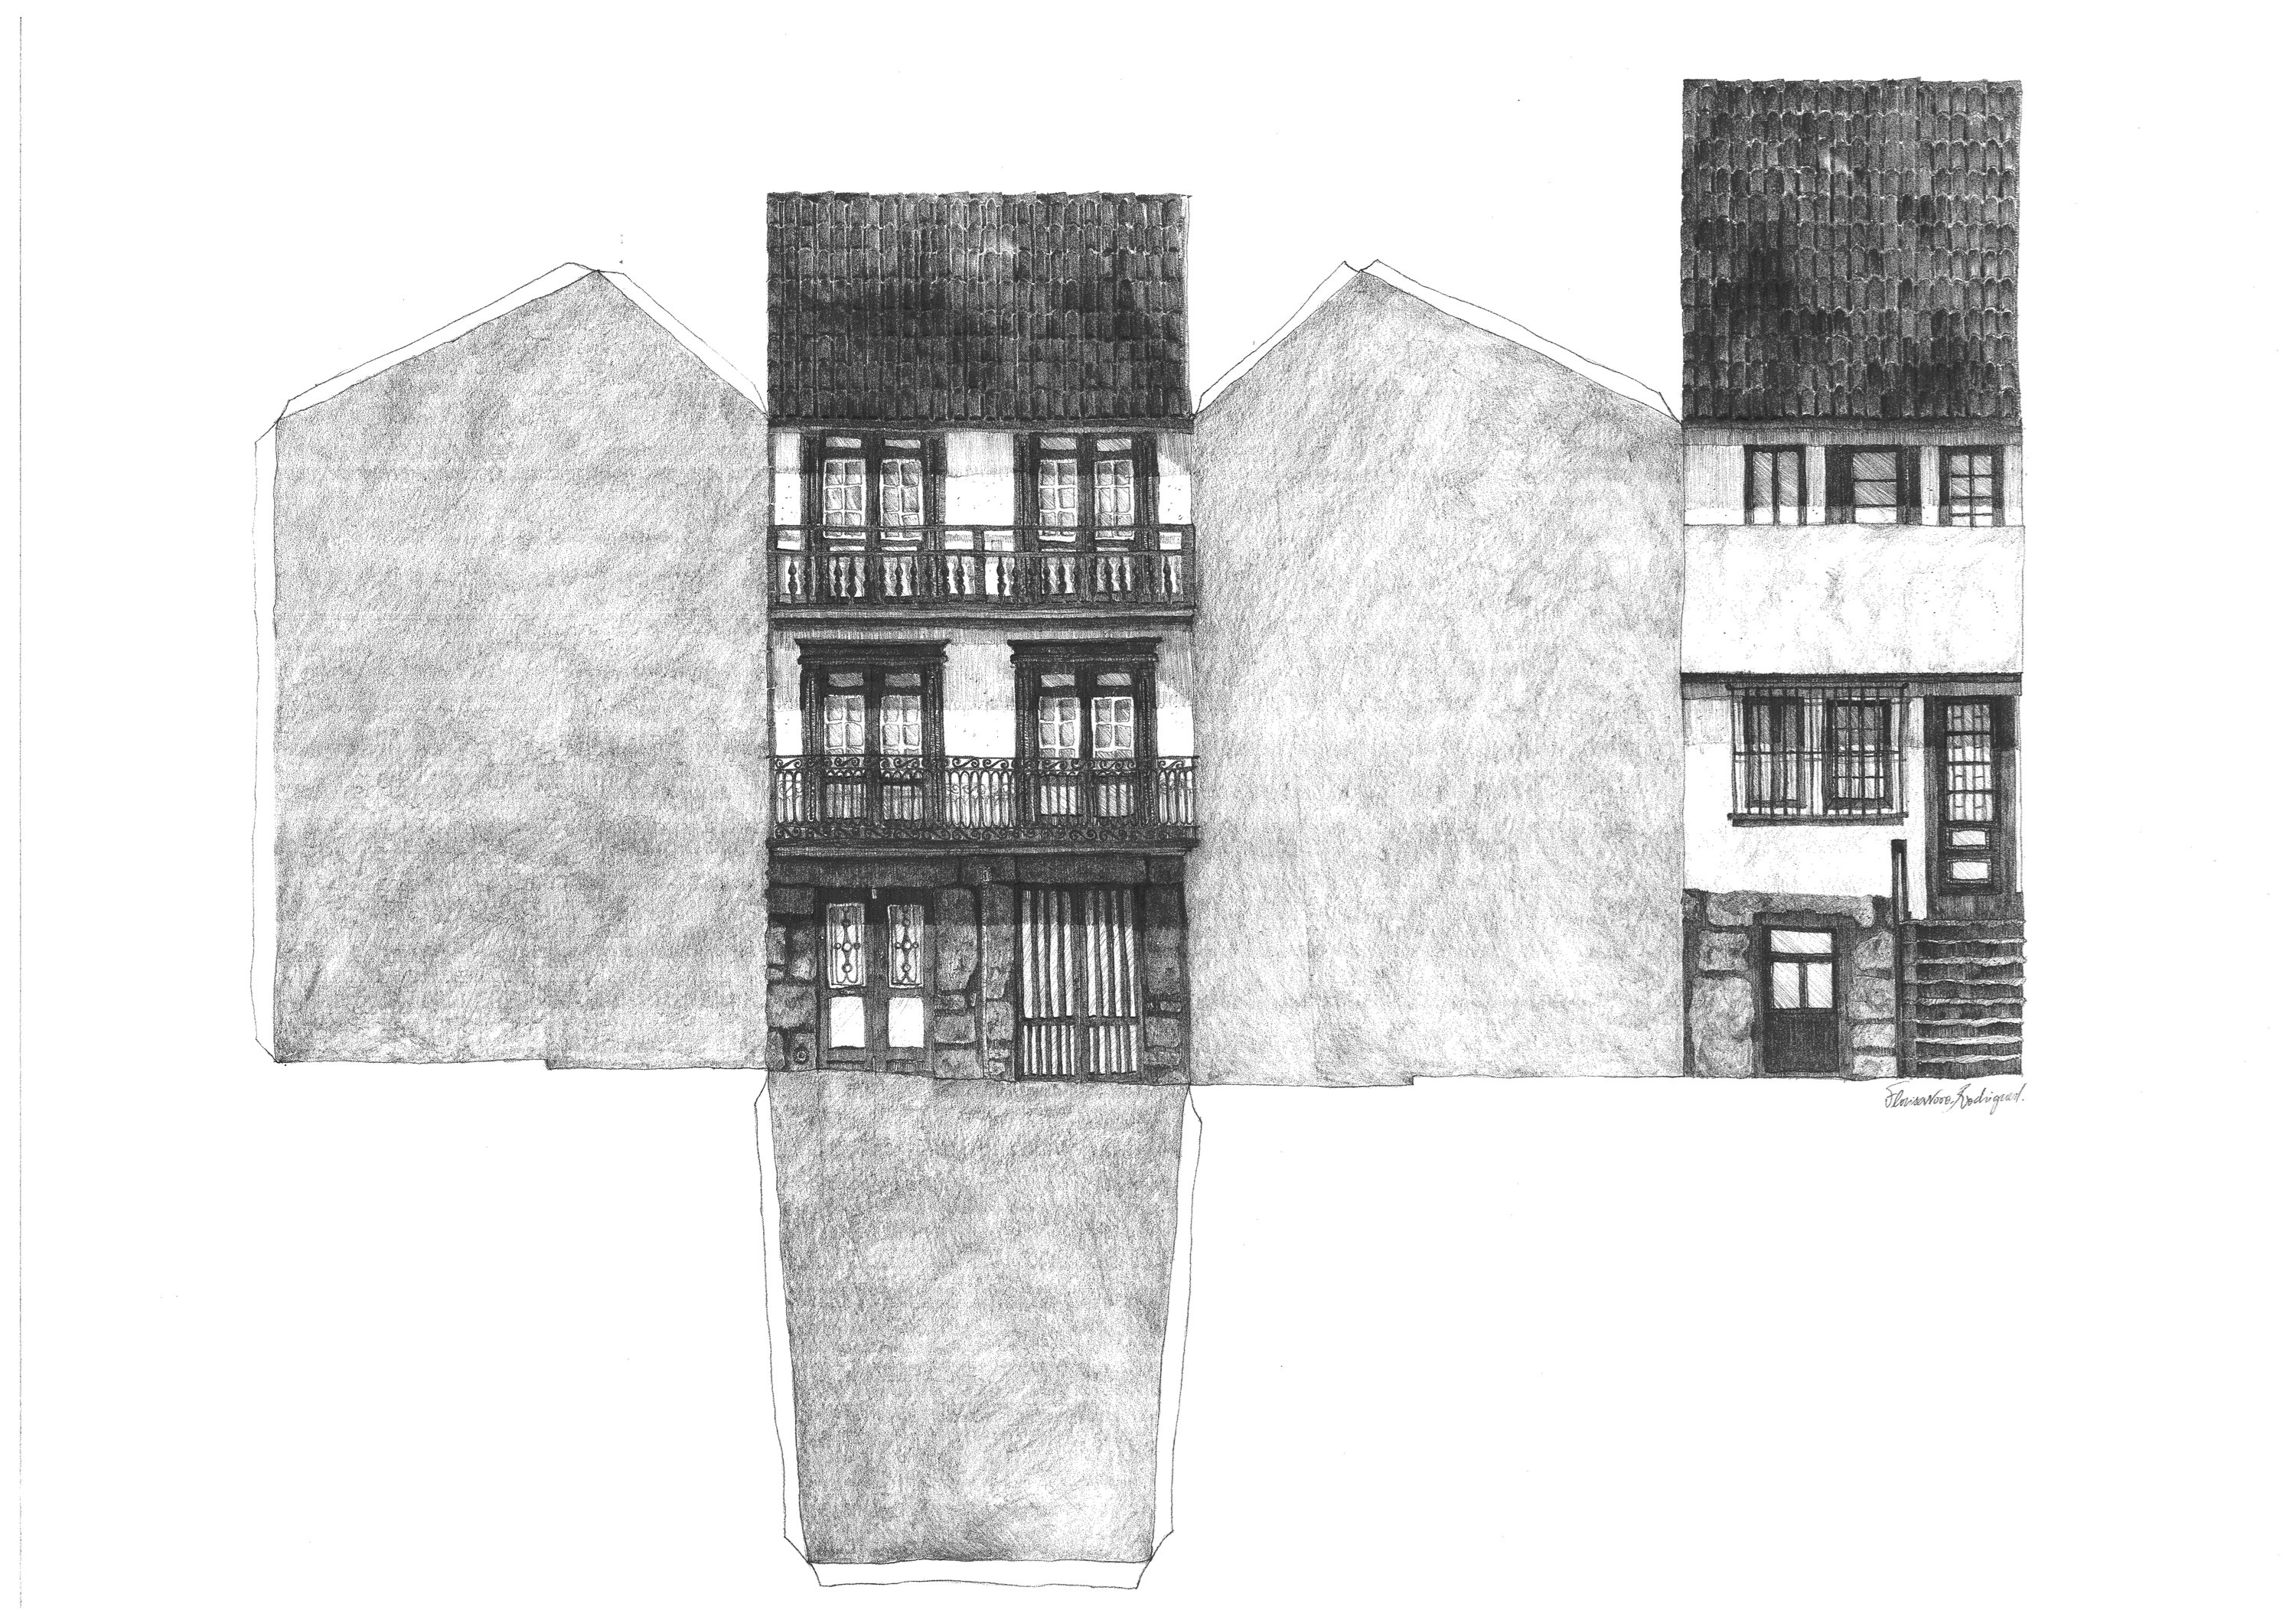 Planificação casa, Guimarães, original Places Pencil Drawing and Illustration by Florisa Novo Rodrigues